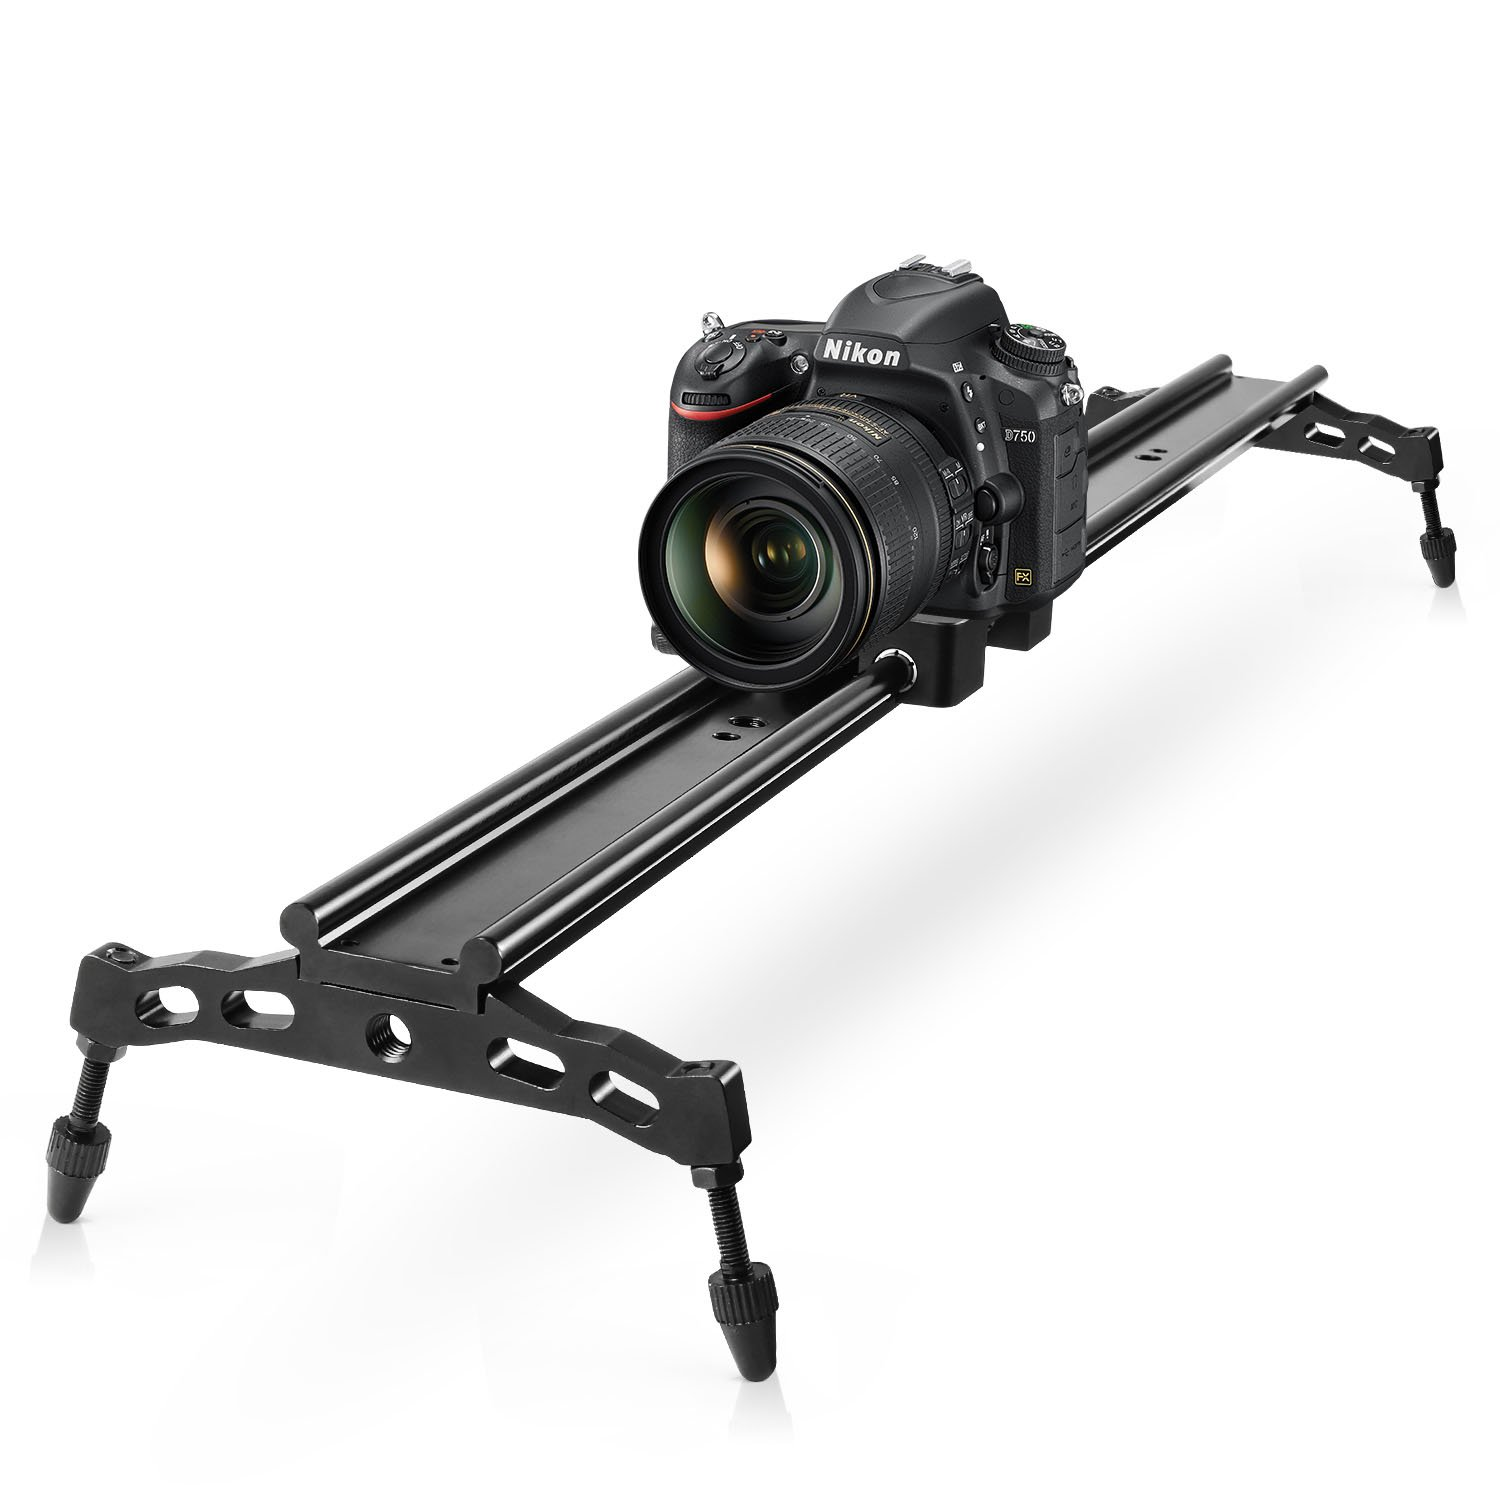 COOCHEER Camera Slider 32'/80cm, Aluminum DSLR Dolly Track Rail Perfect for Photography and Video Recording with 1/4' 3/8' Screw Up to 17.5lbs/8kg Load Capacity,for YouTube video and short filmmakers 4331911764